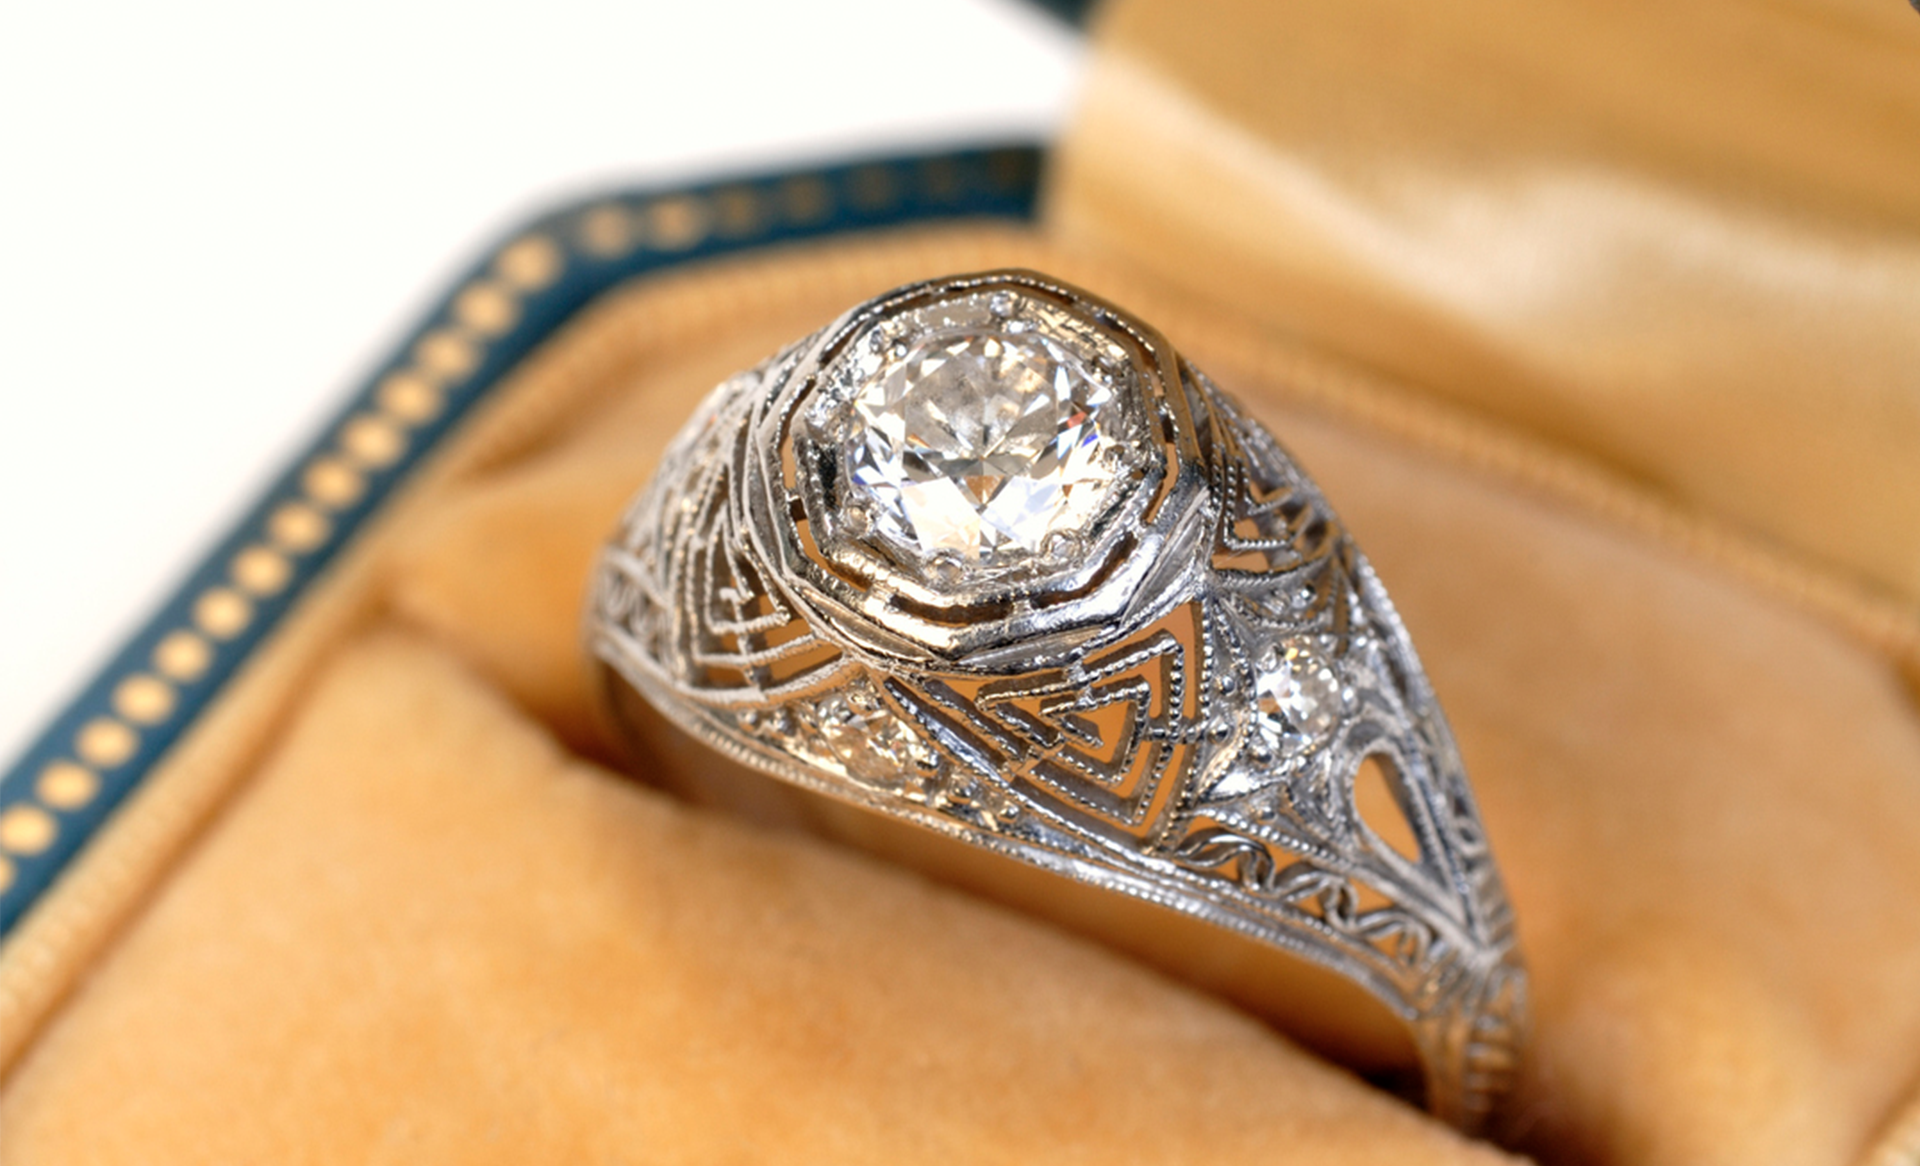 Rare vintage, one-of-a-kind, hand-crafted engagement ring with 14 carat white gold filigree style metal work base